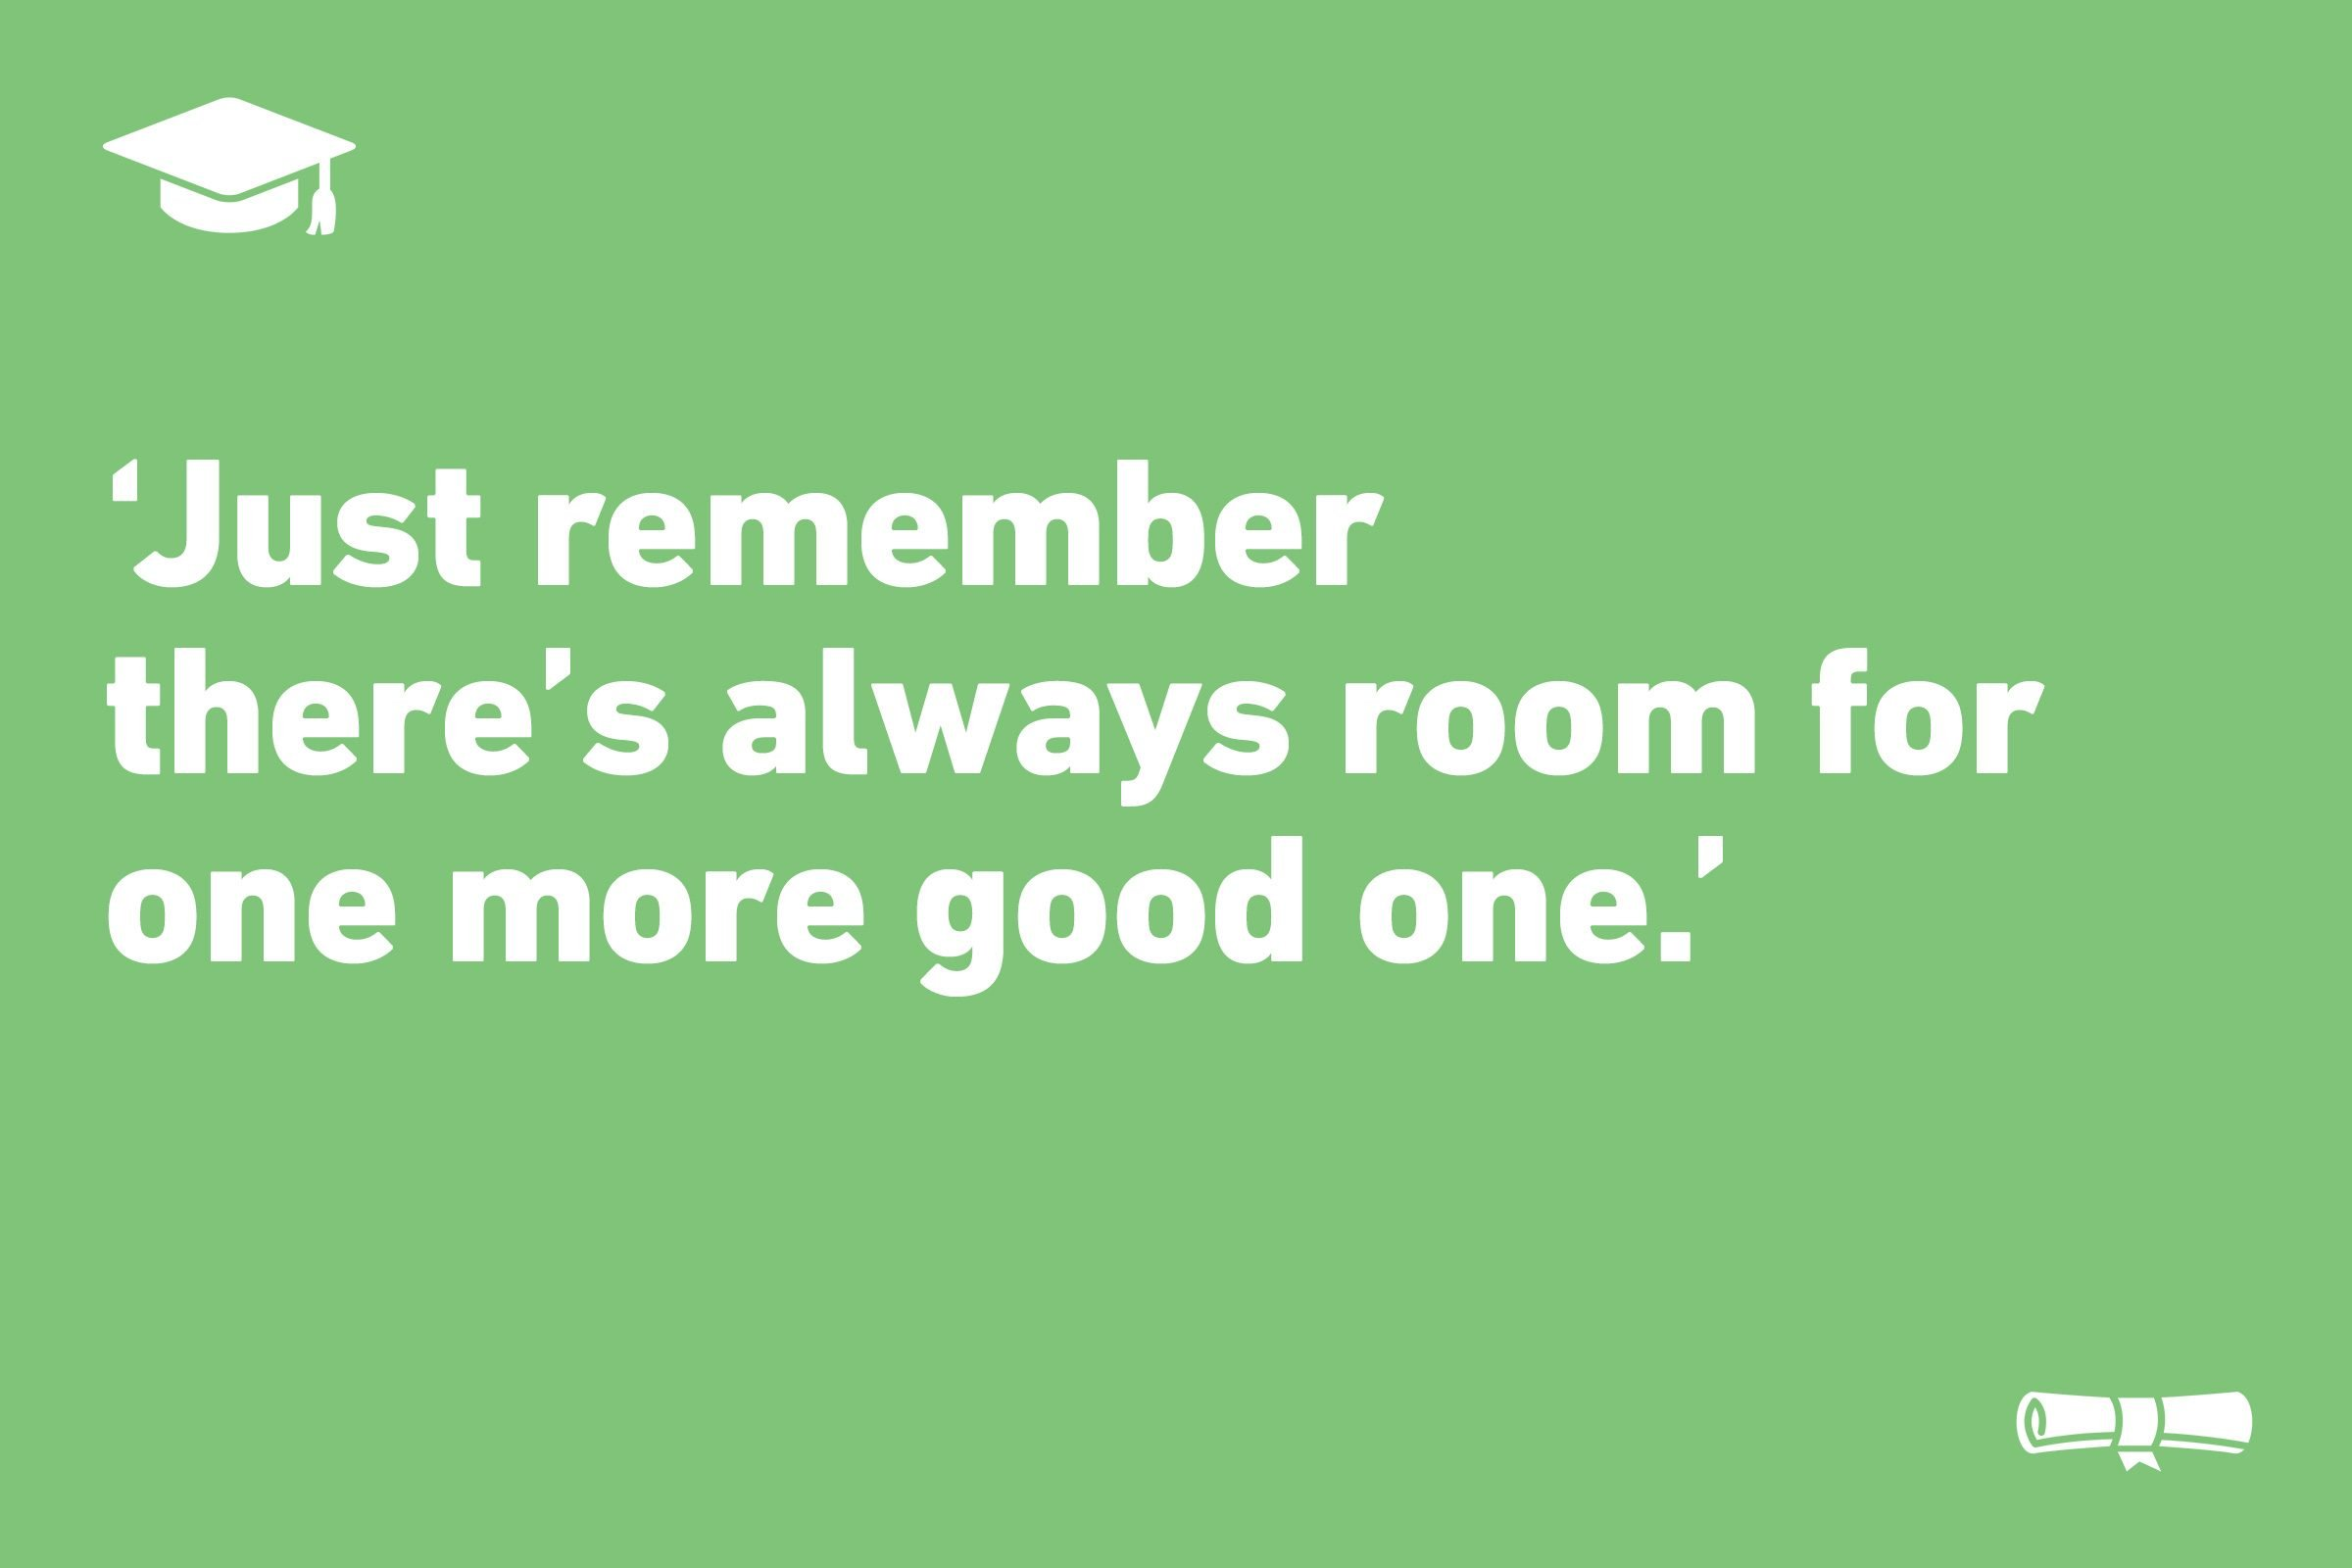 Most Inspiring Graduation Quotes From Grad Speeches Readers Digest